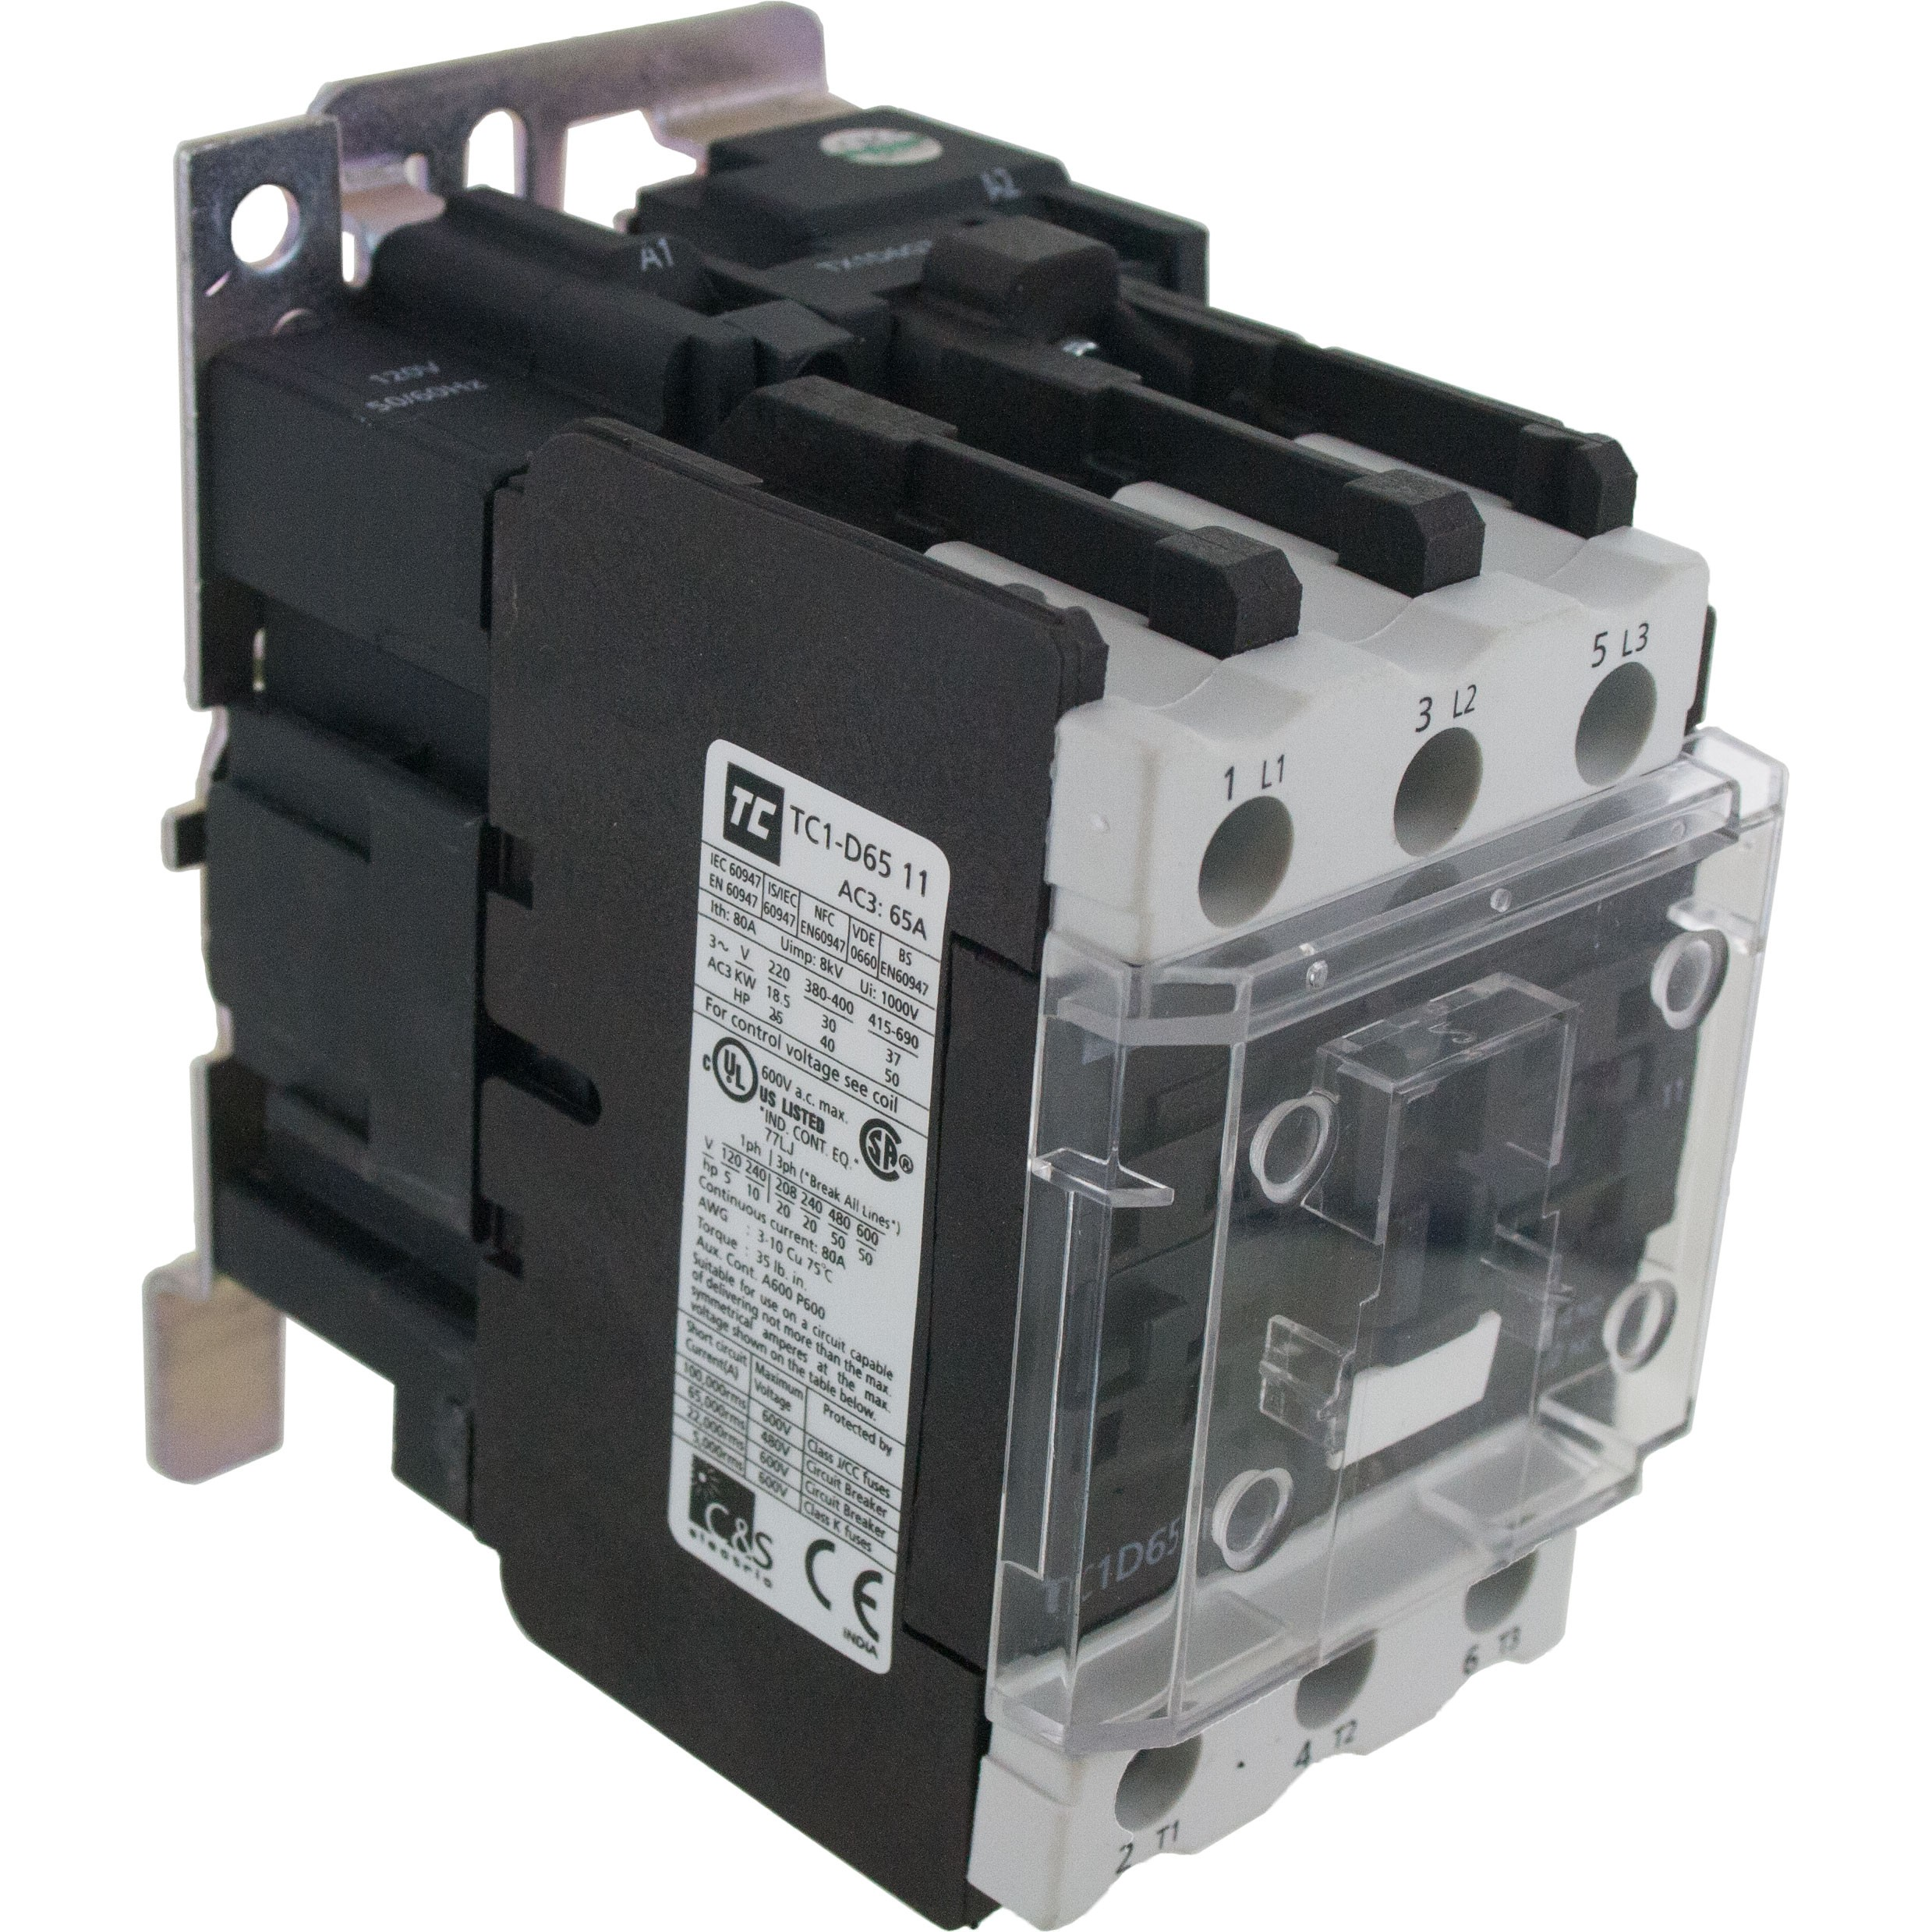 3 Pole Contactor 65 Amp 1 N/O - 1 N/C 440 Volt AC Coil Angle